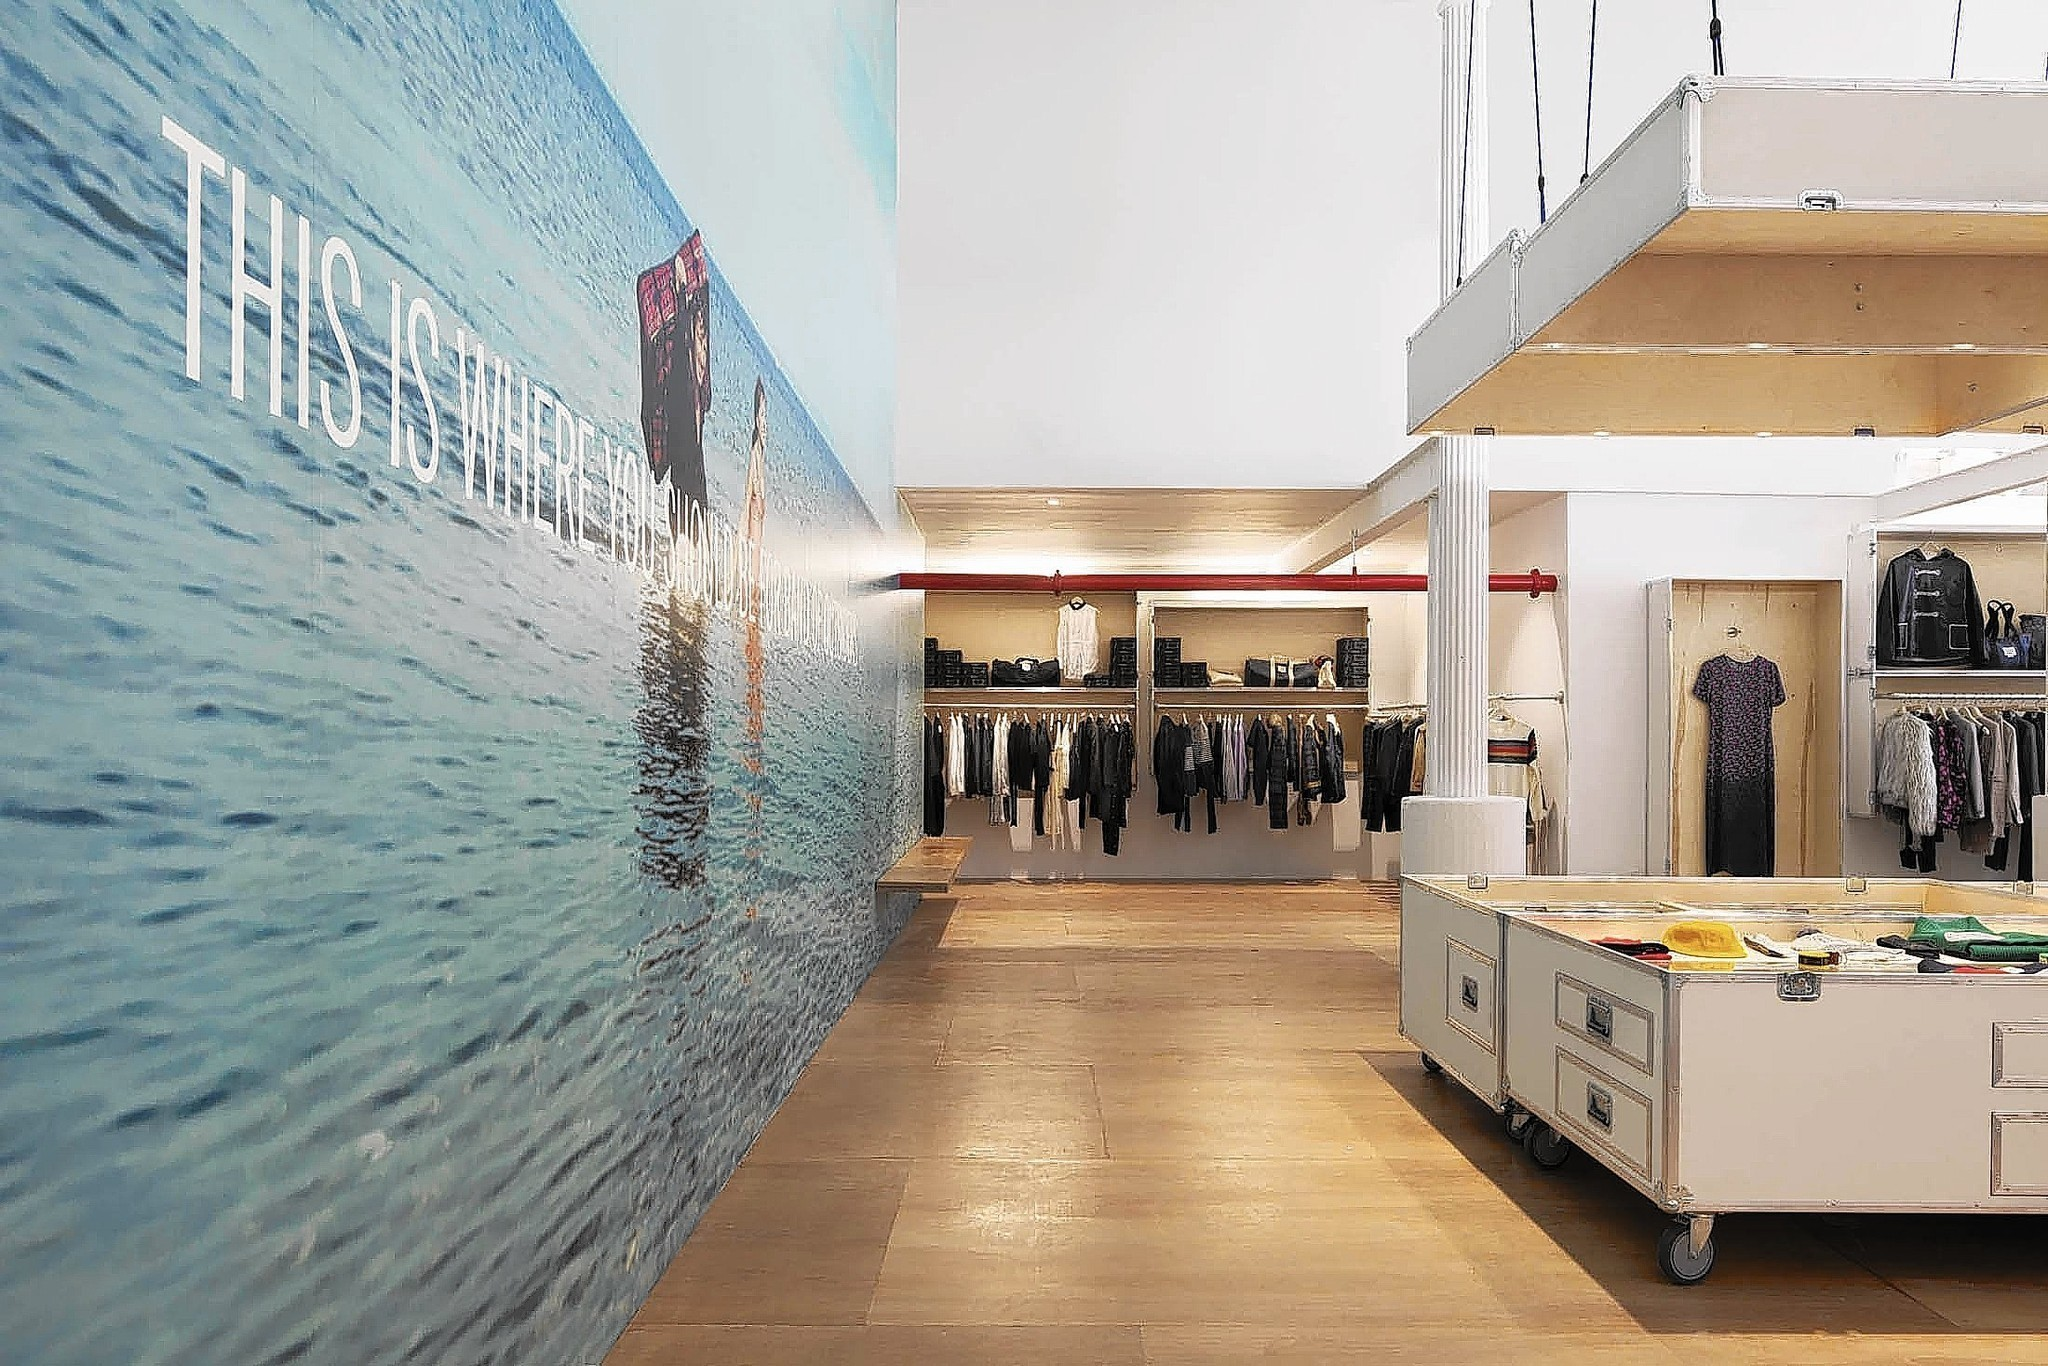 Band of Outsiders opens store in New York with an L.A. vibe